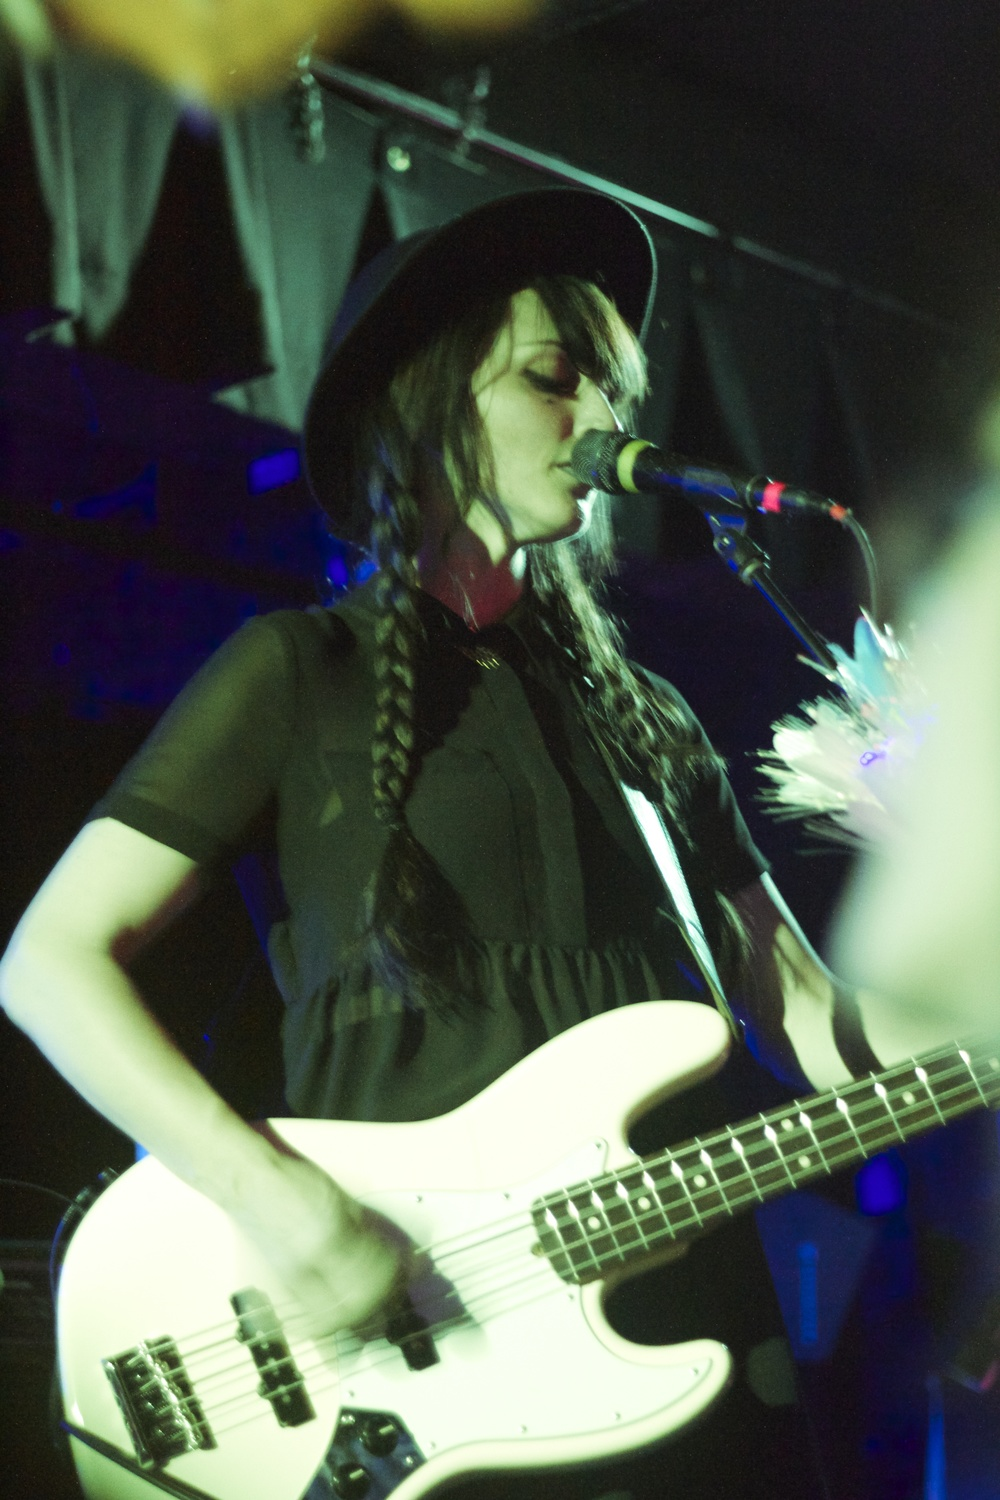 Dum Dum Girls Black Cat DC Brightest Young Things Farrah Skeiky 09.jpg